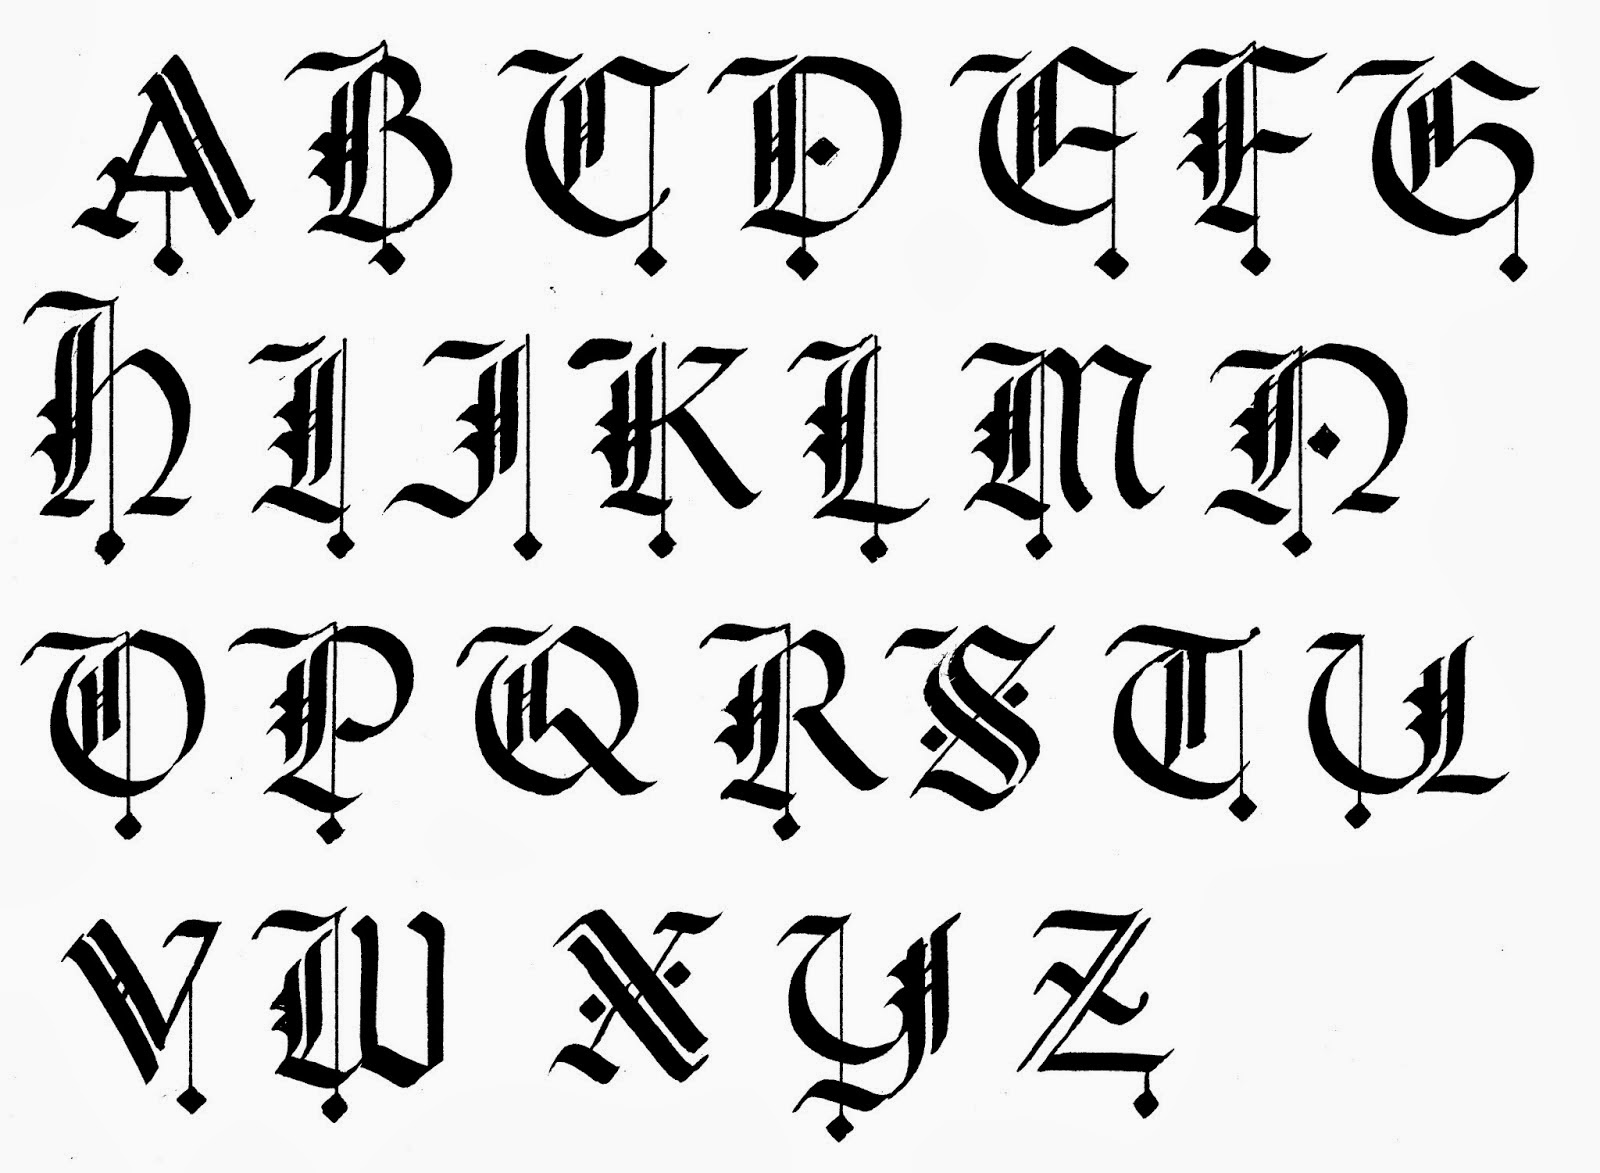 medieval writing font Generate tattoo lettering designs by entering text, selecting the font, size and style free no download necessary.